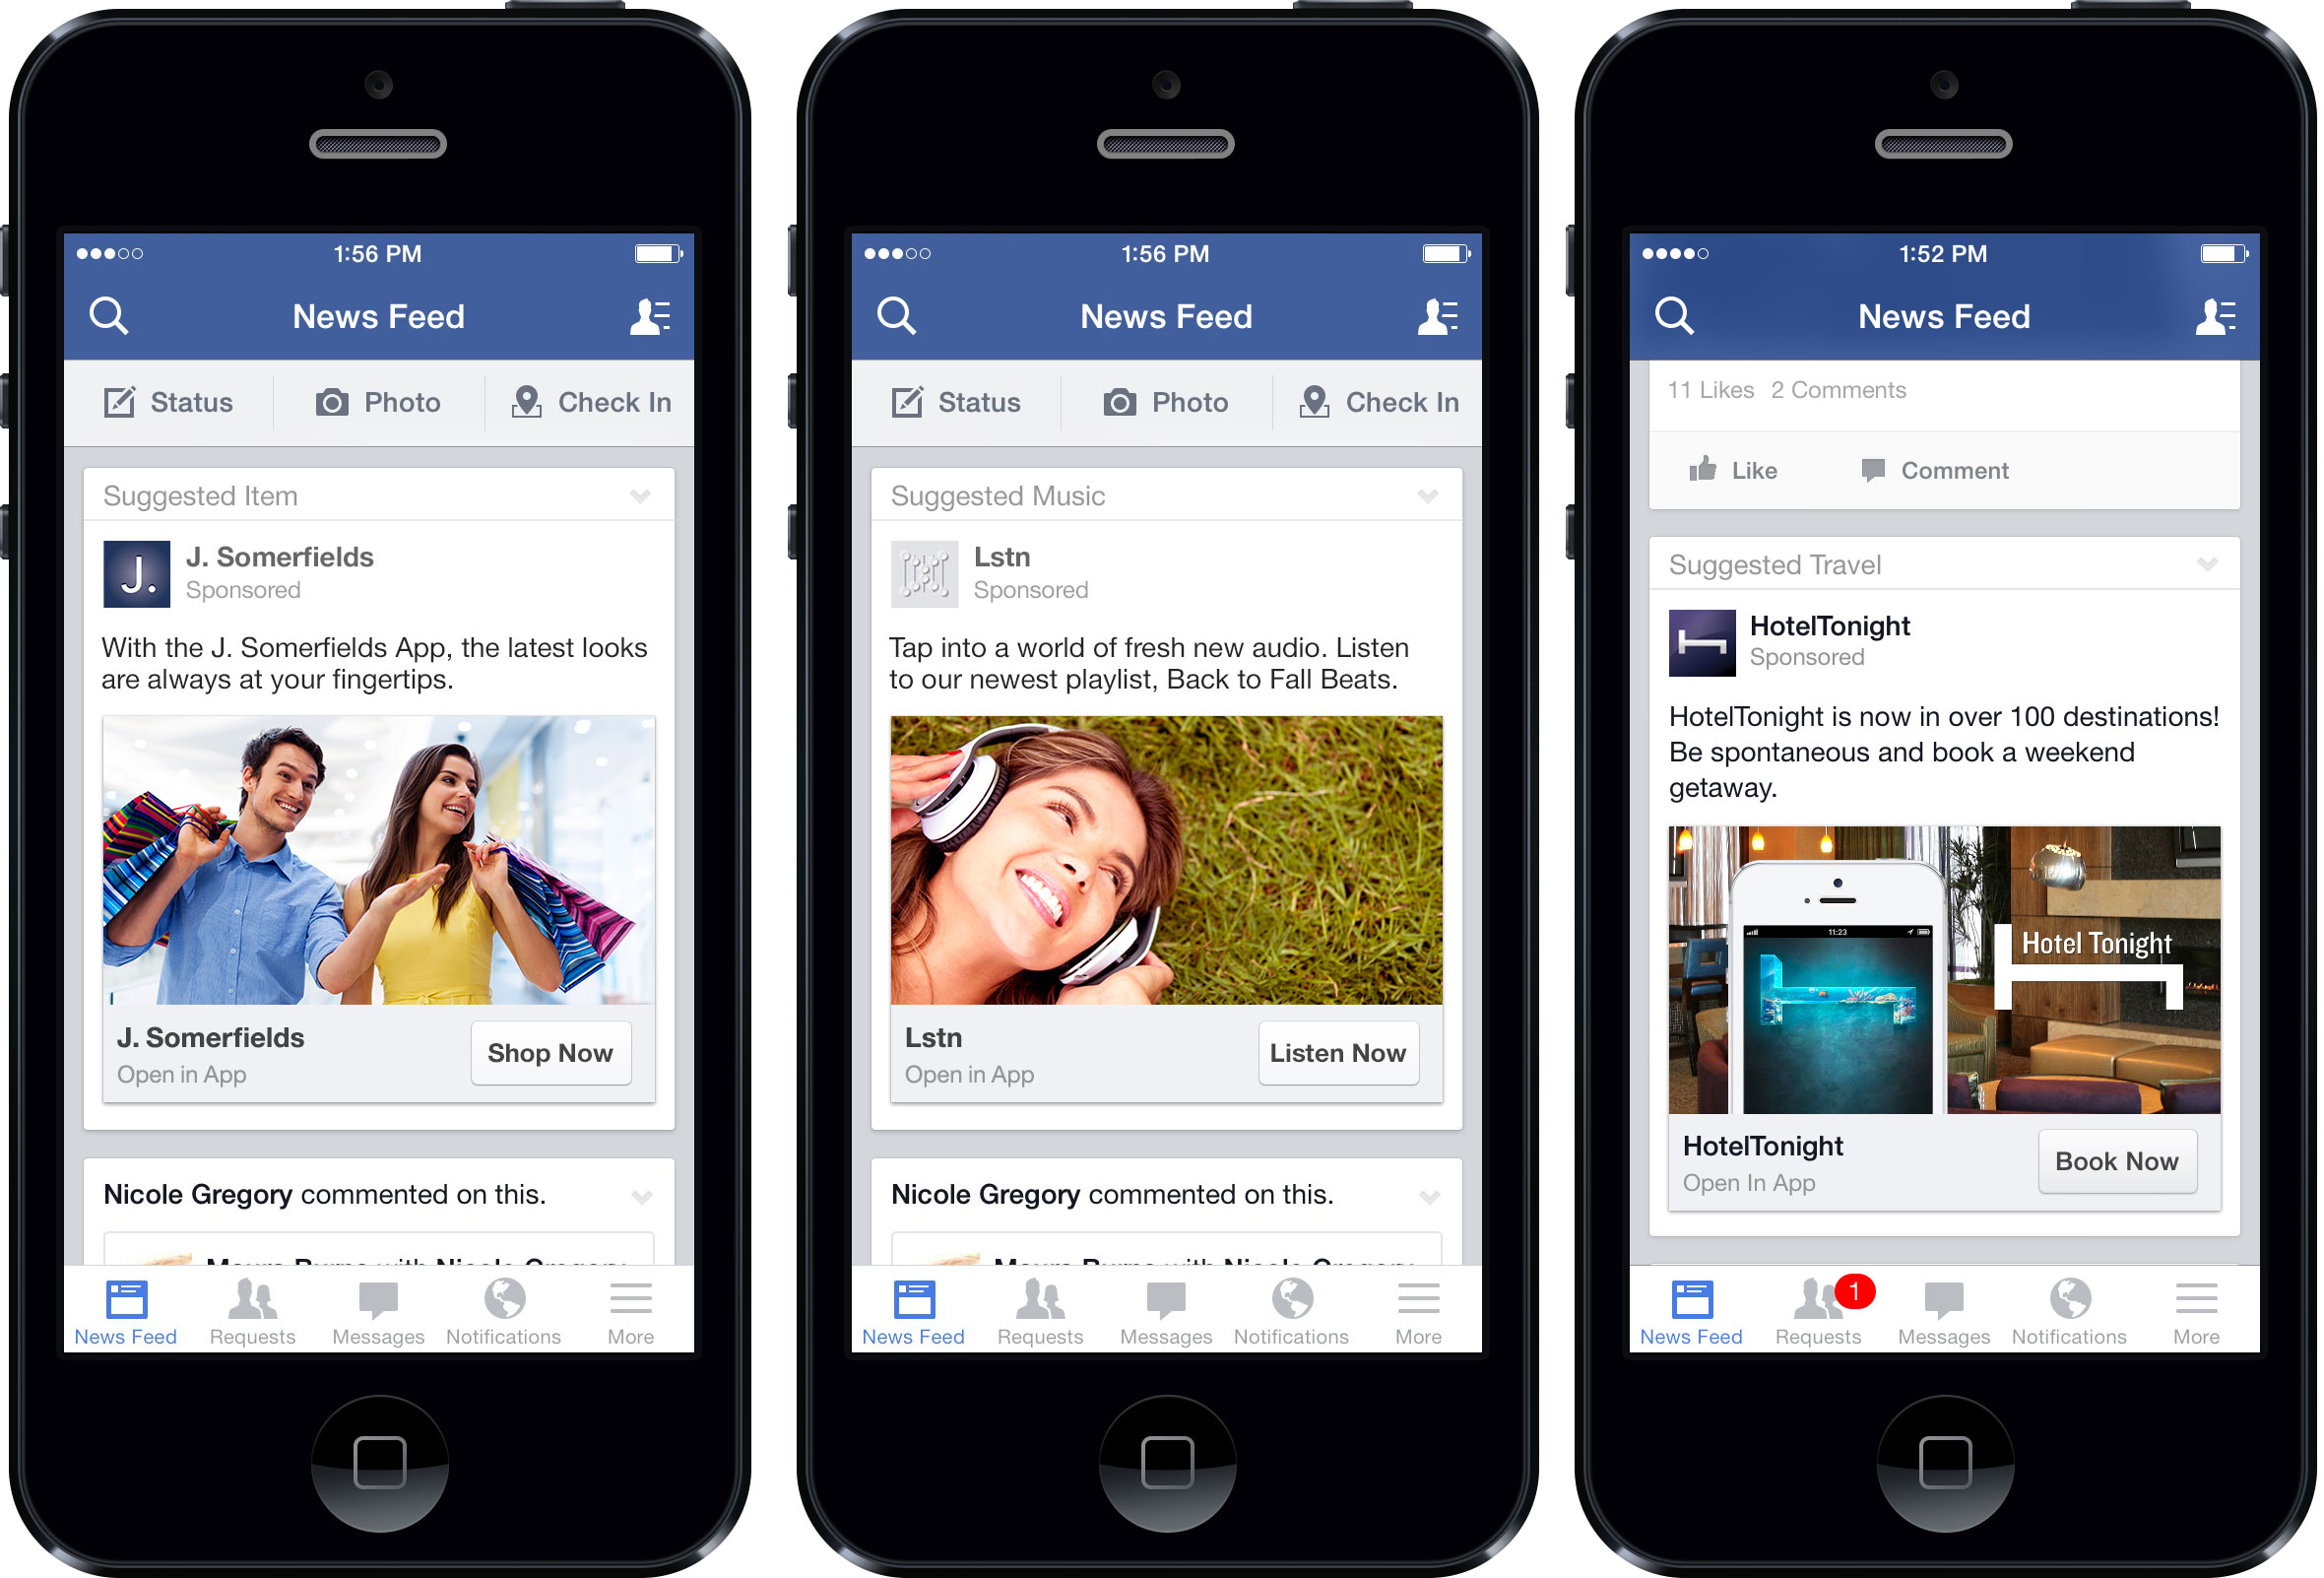 Facebook Updates Mobile App Install Ads To Drive Engagement